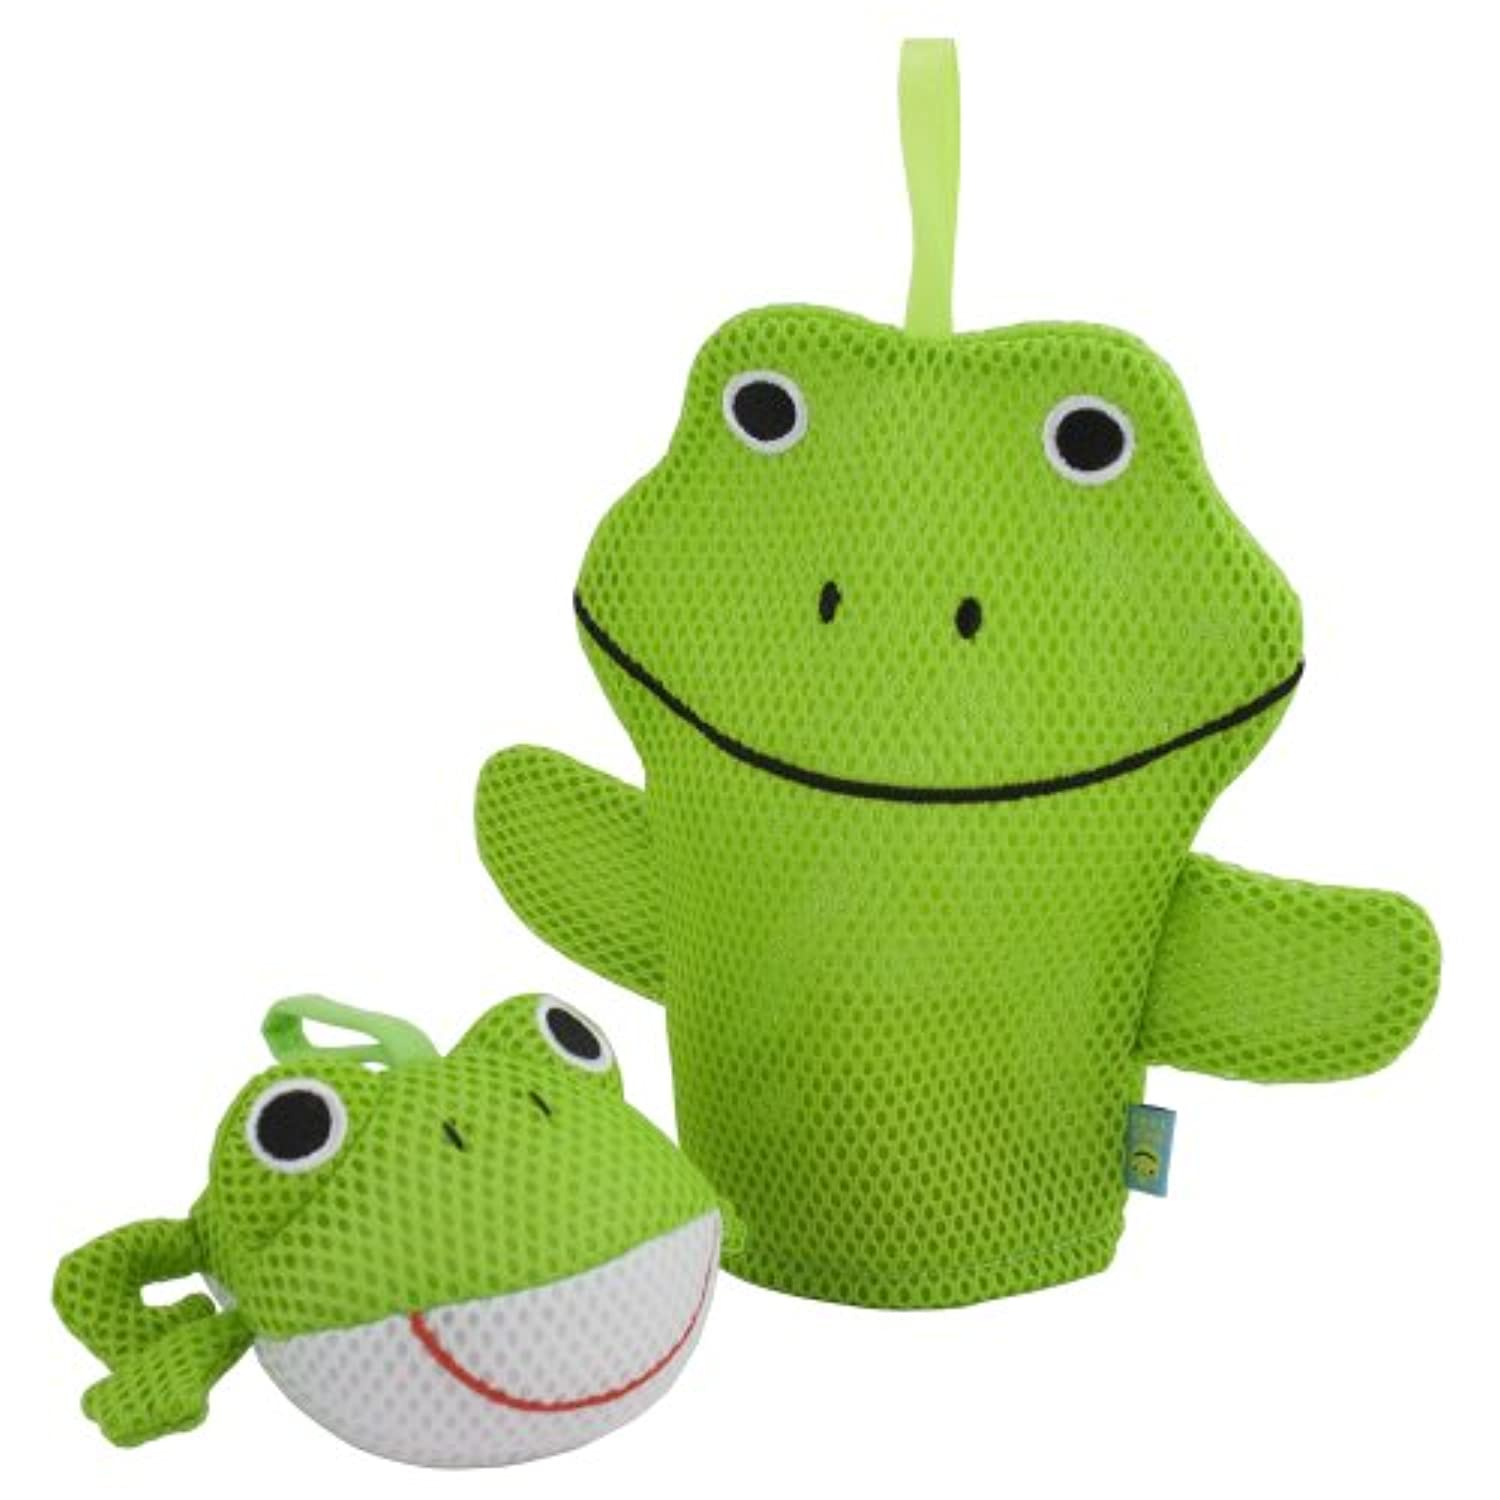 Rich Frog Wacky Wash Mitt and Bath Sponge Combo - Frog by Rich Frog